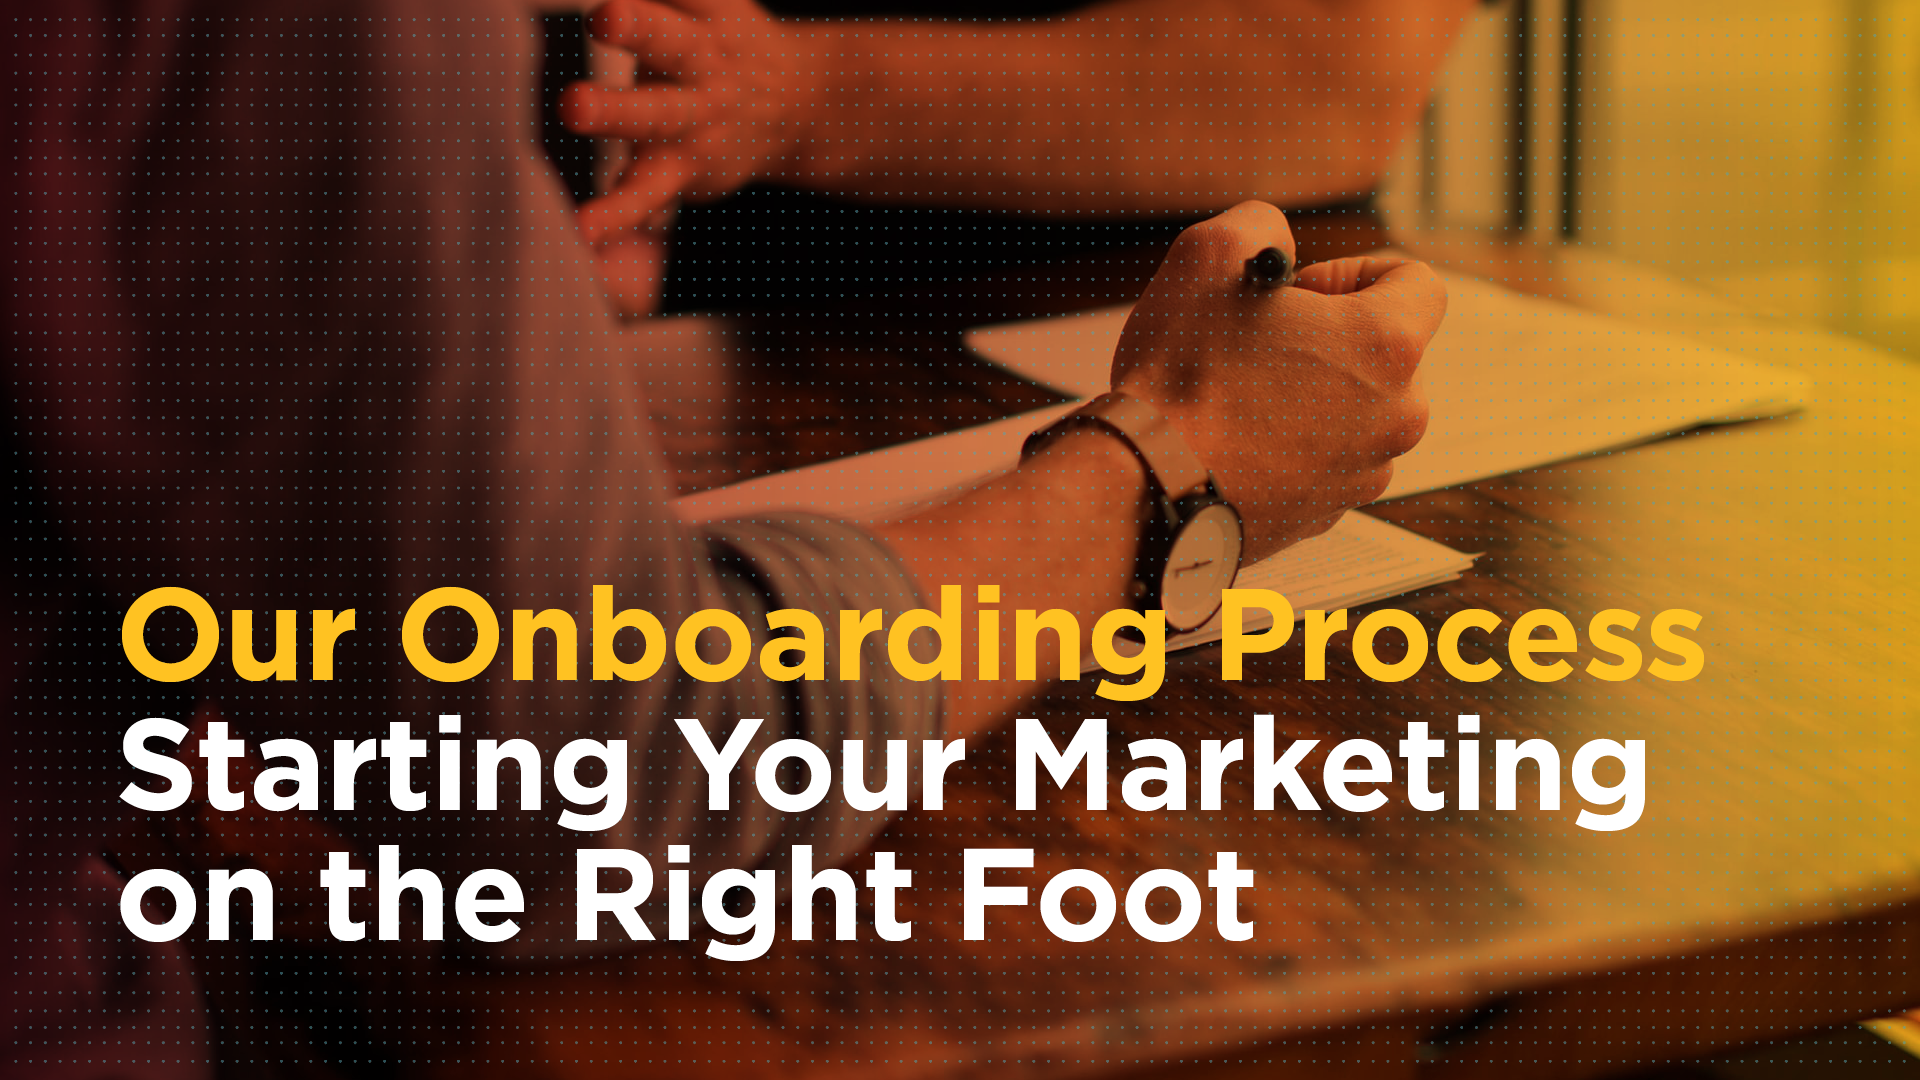 Our Onboarding Process: Starting Your Marketing on the Right Foot Featured Image